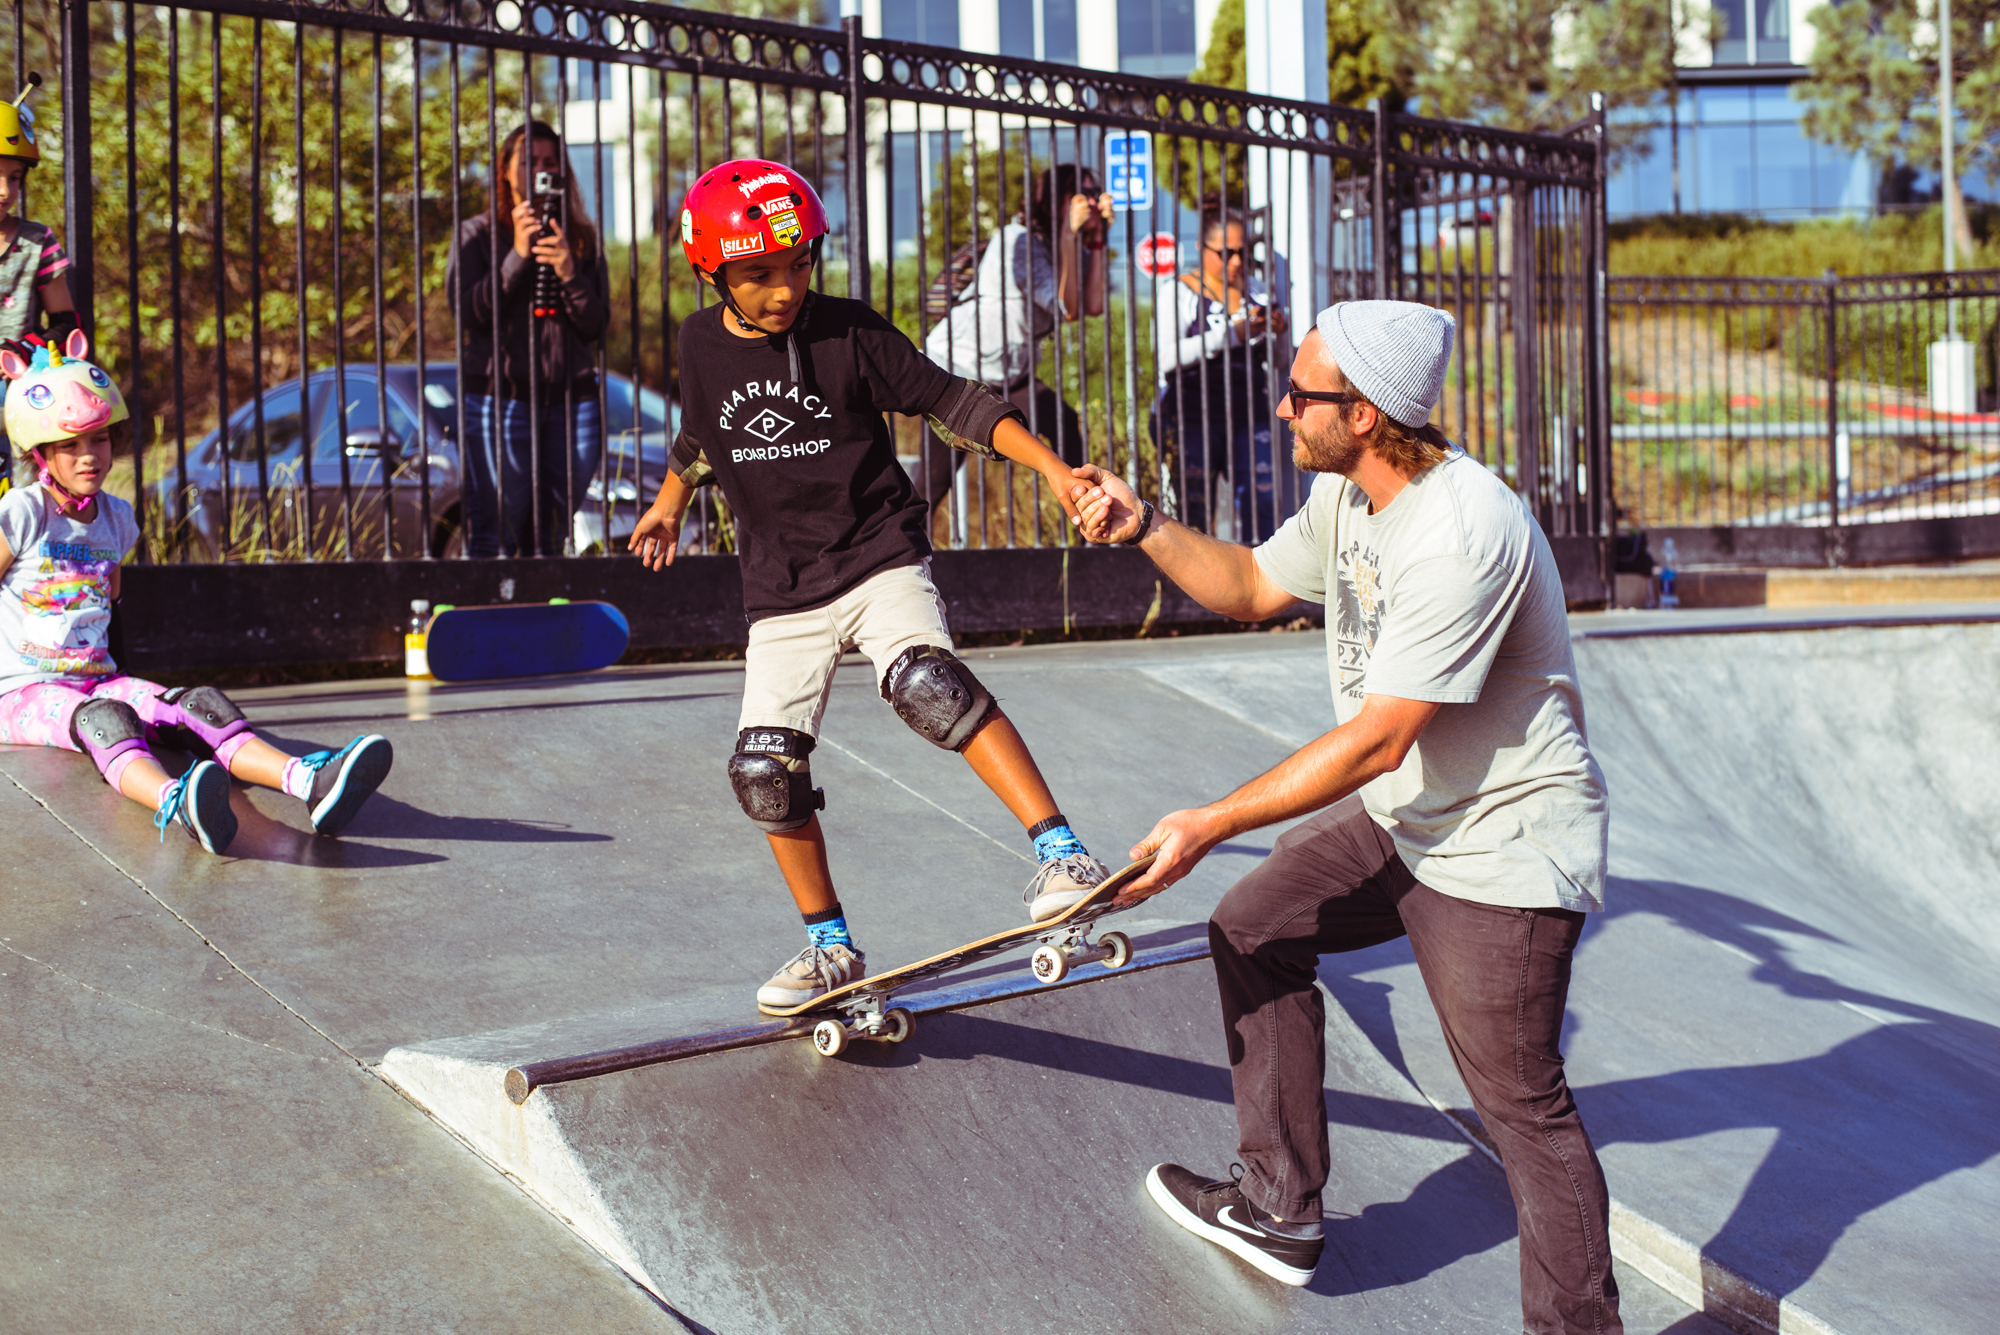 Skateboard Birthday Party-5.jpg